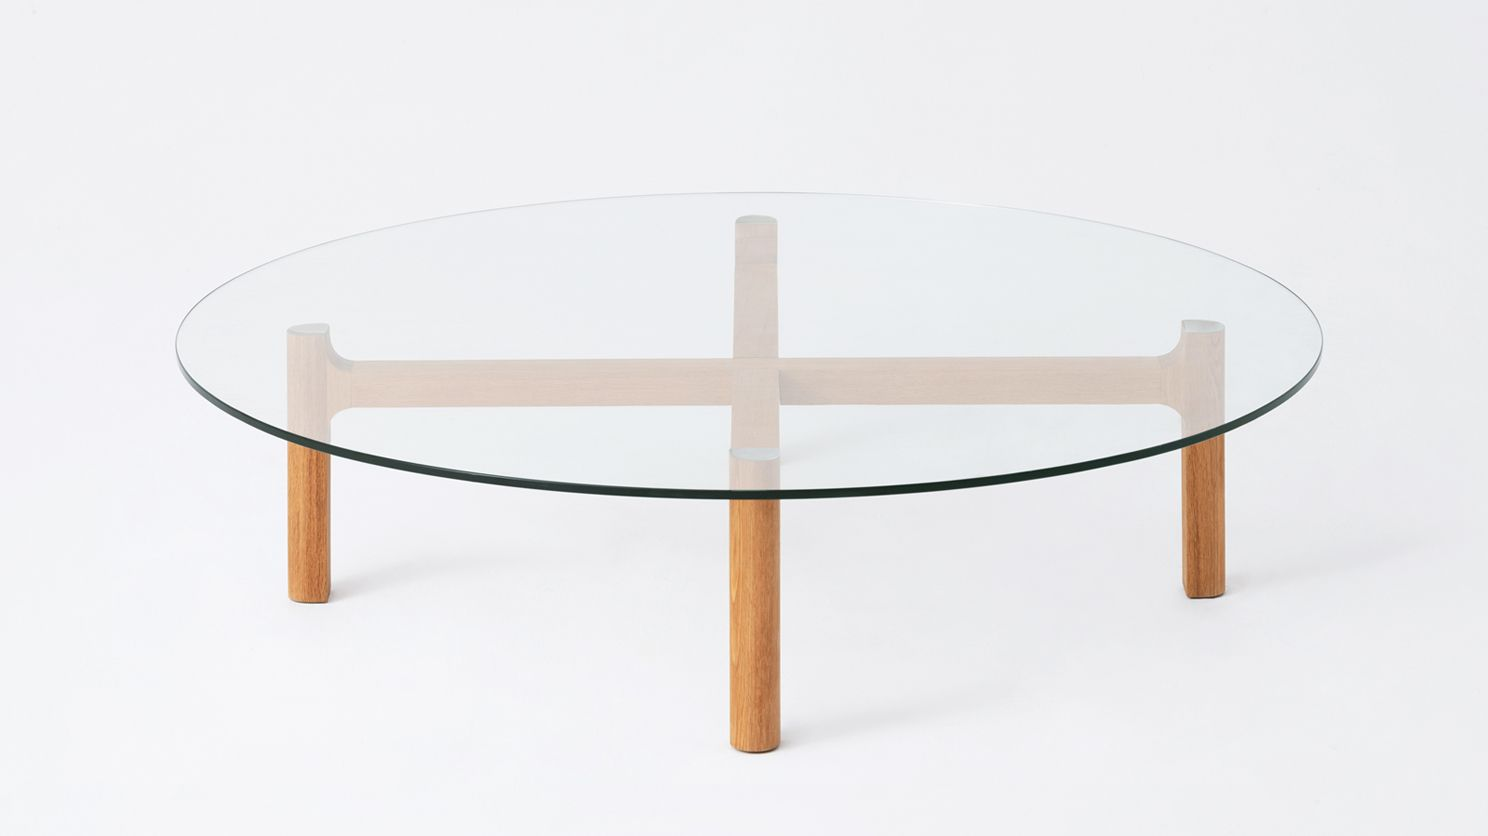 Place Round Coffee Table Eq3 Coffee Table Round Coffee Table Round Glass Coffee Table [ 836 x 1488 Pixel ]